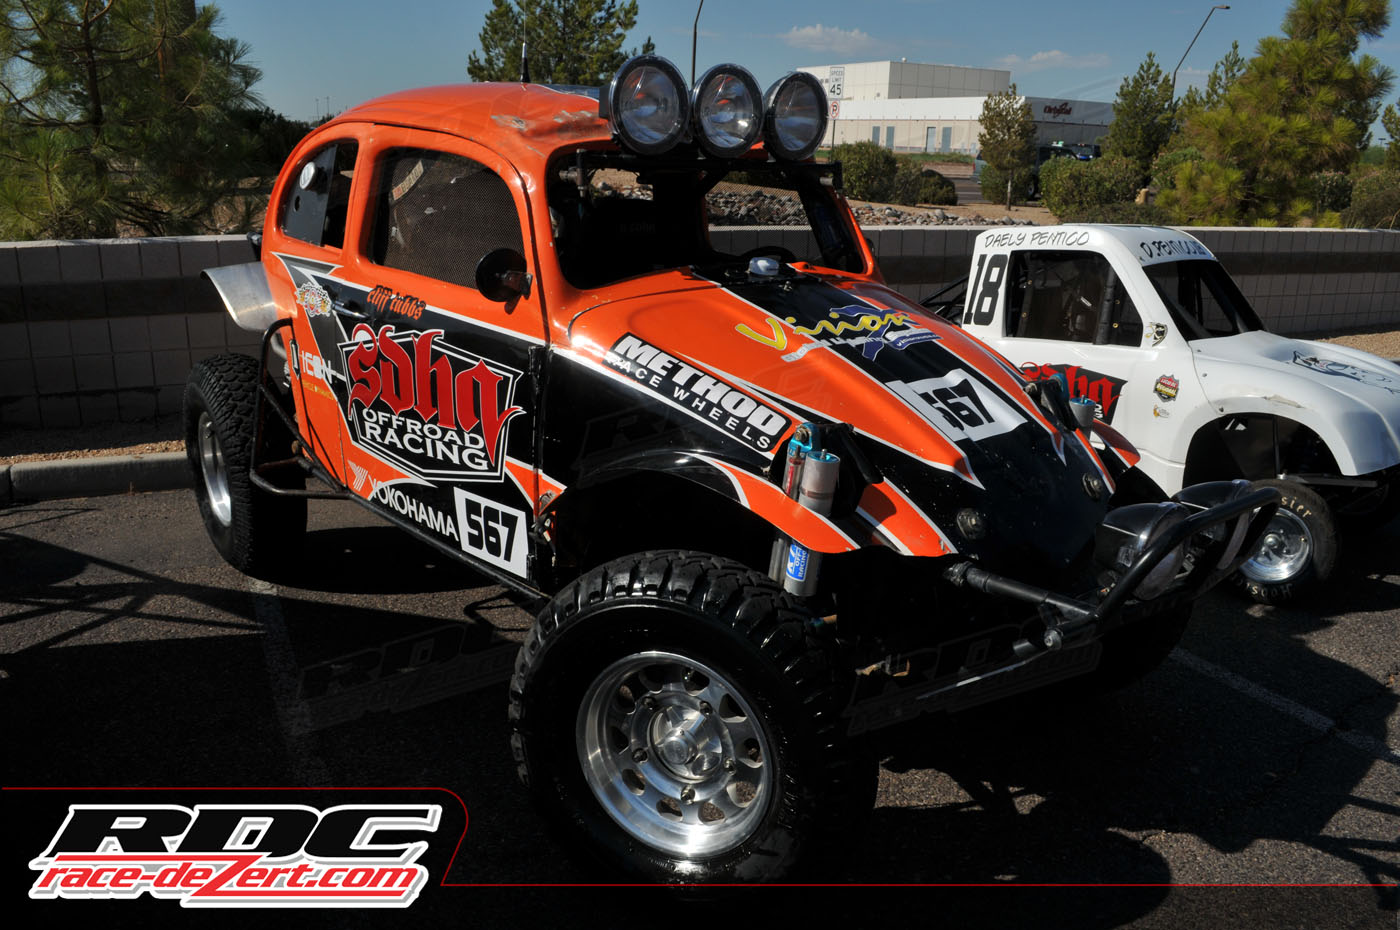 The post CODE Off-Road Polaris Baja Mexicali – San Felipe appeared first on unicornioretrasado.tk Tweet; Share 0; Cameron Steele Is Your SCORE Trophy Truck Baja Champion. Comments. Leave a Reply Cancel reply. Your email address will not be published. Required fields are marked * Comment. Name *.